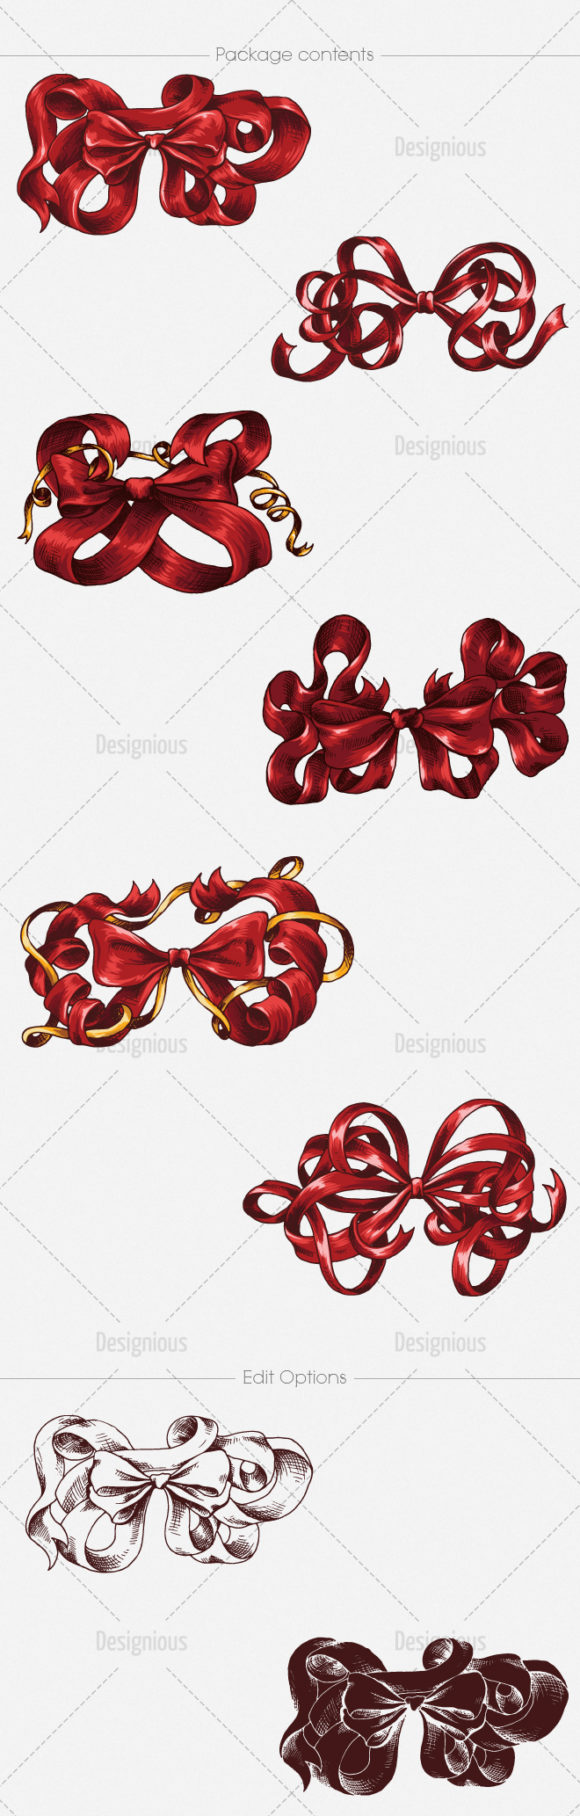 Christmas Vector Pack 18 6